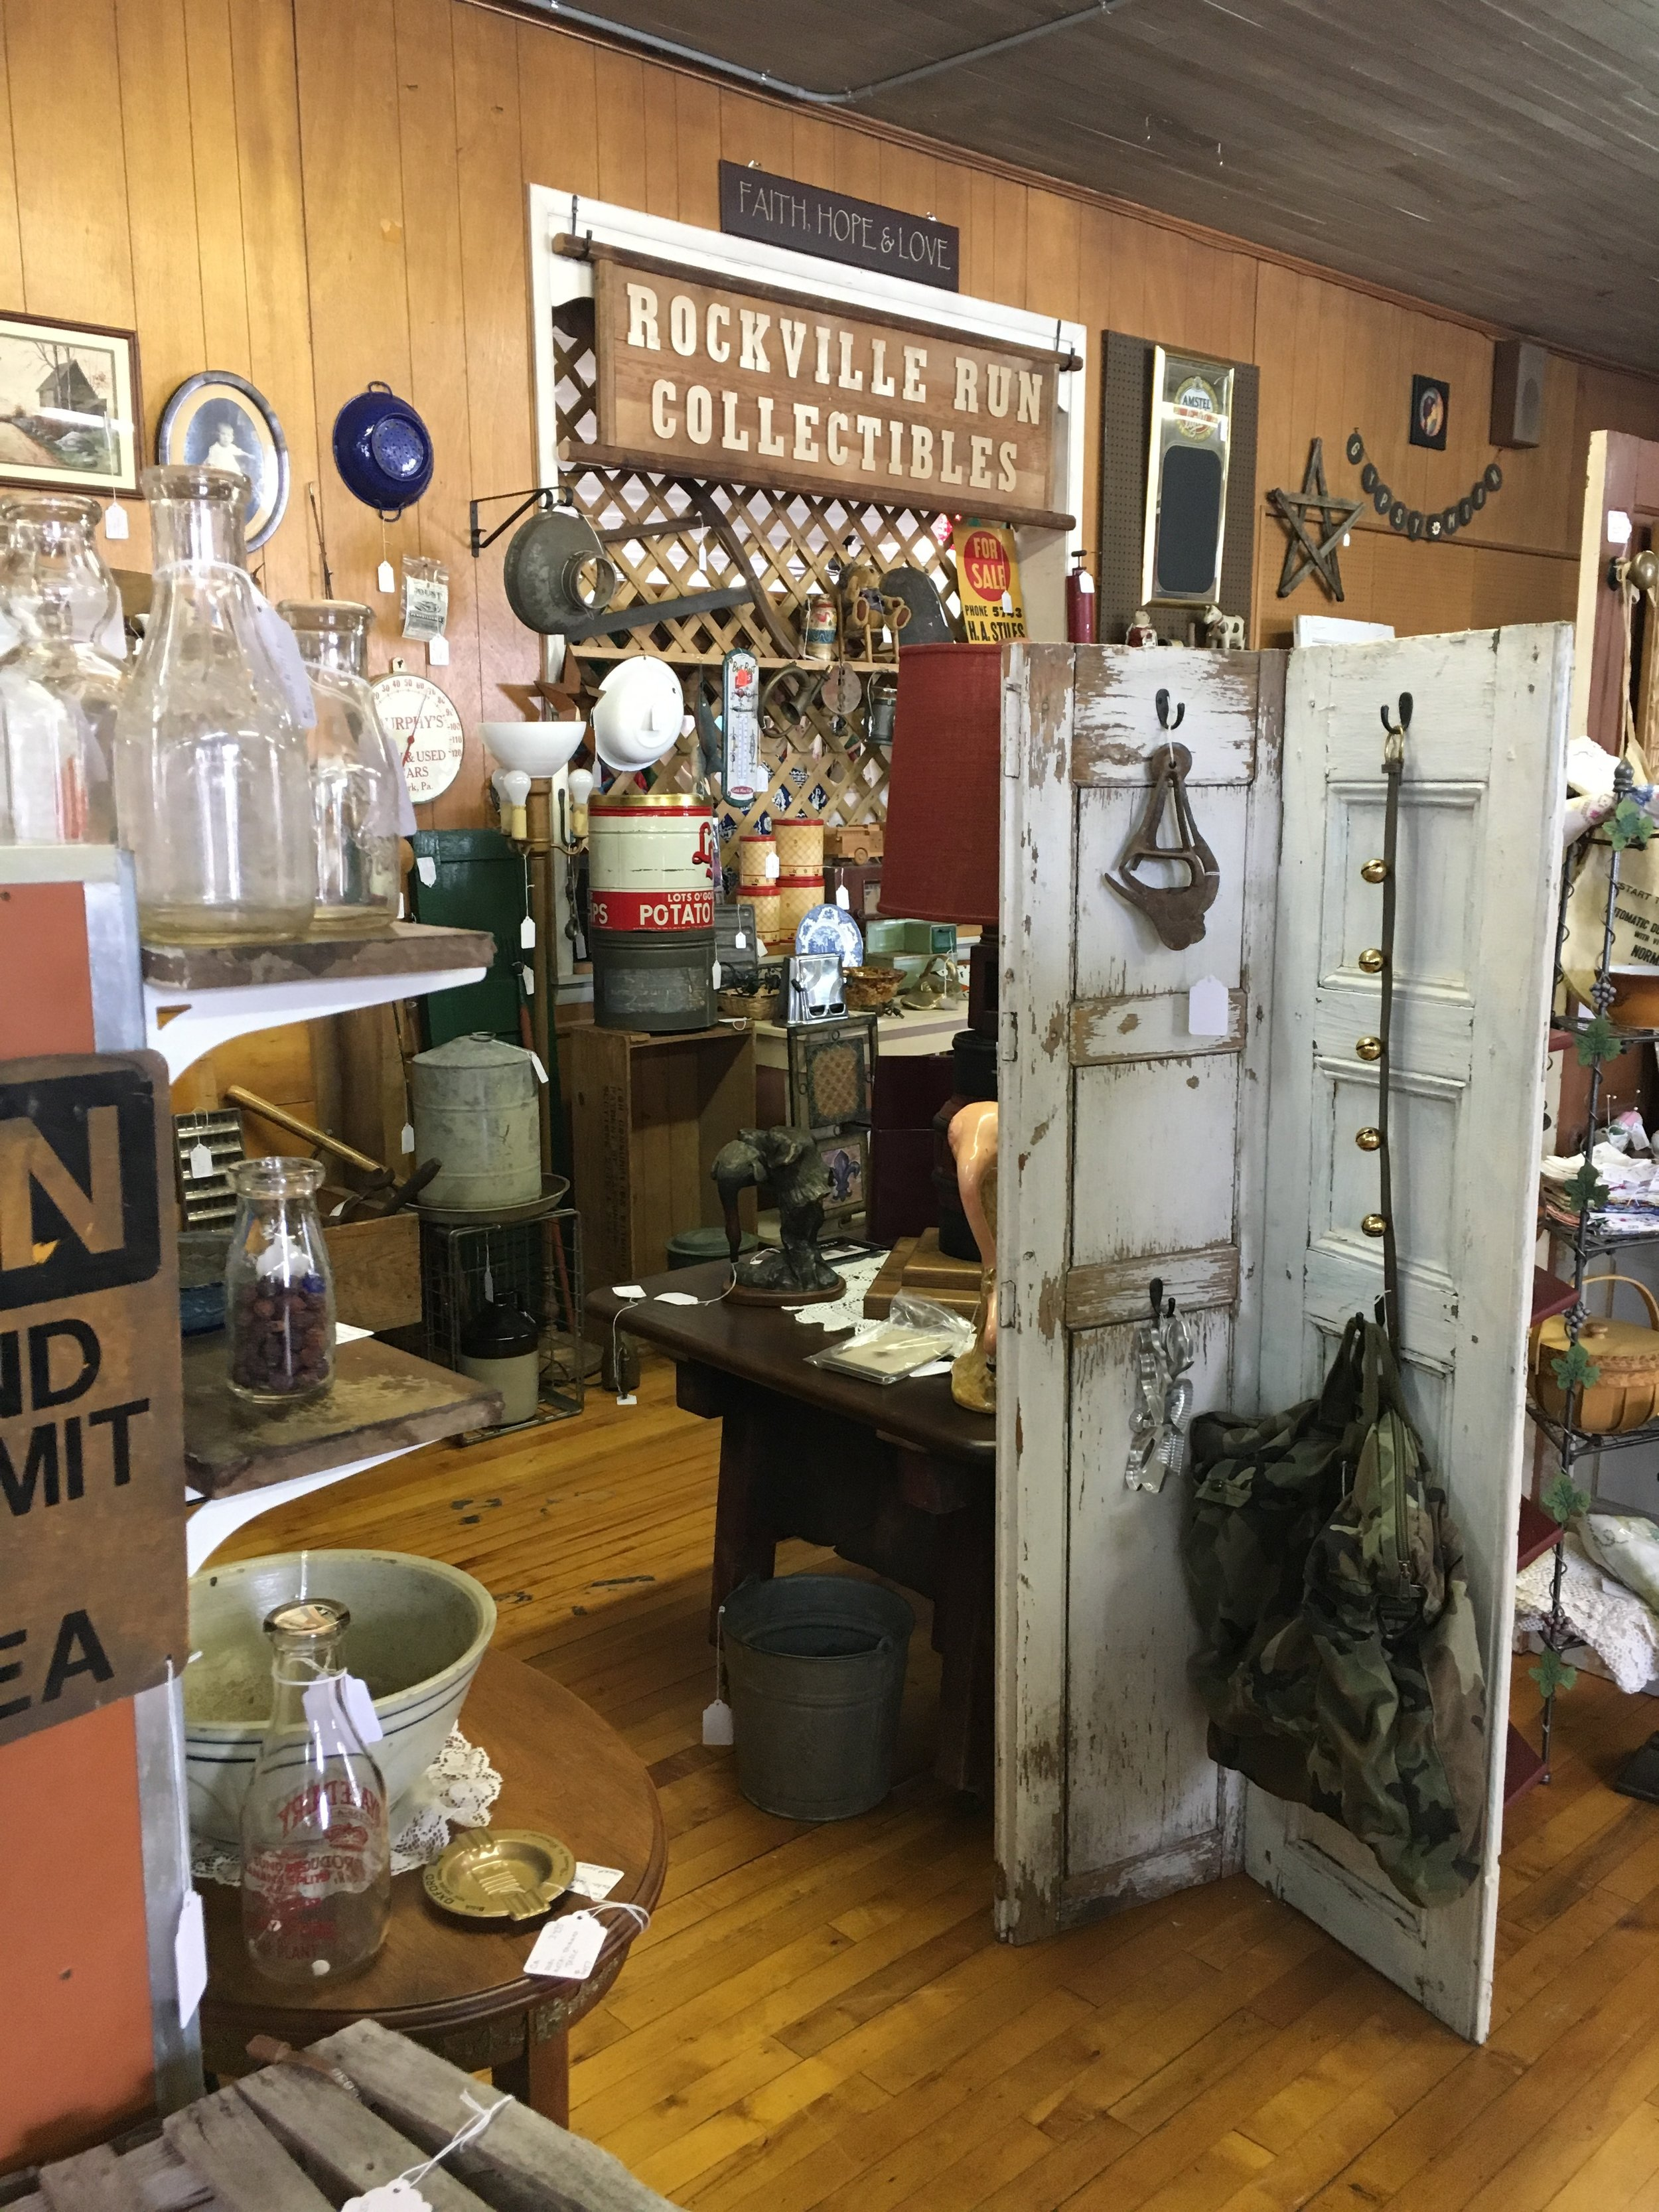 Rockville Run Antiques and Collectibles - An array of beautiful antique pieces